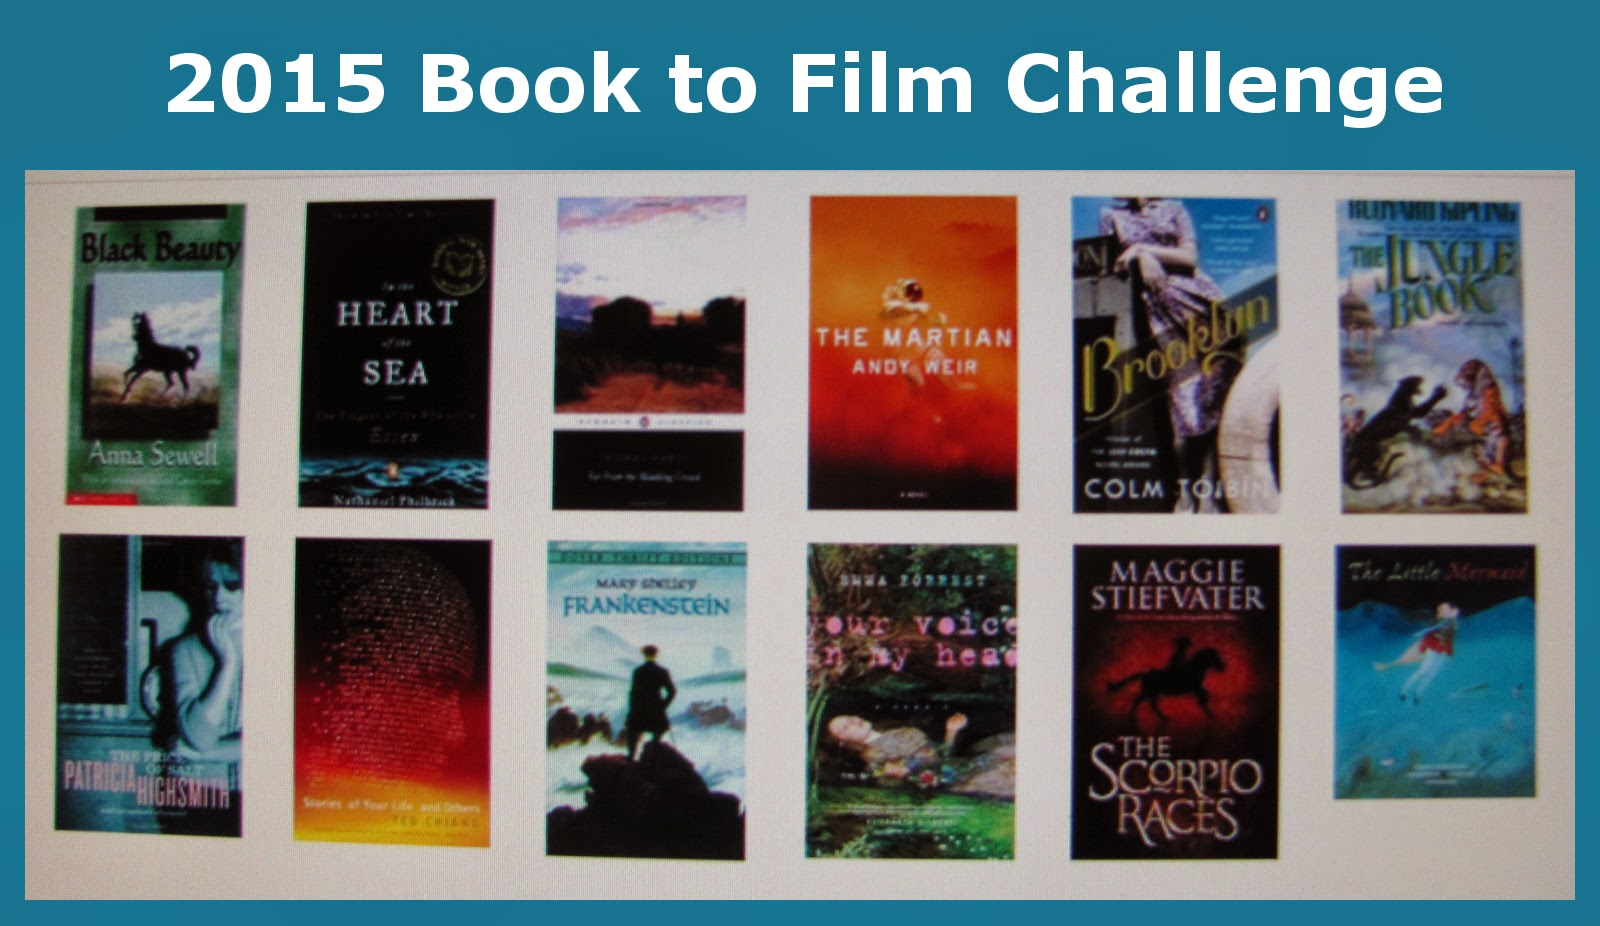 2015 Book to Film Challenge